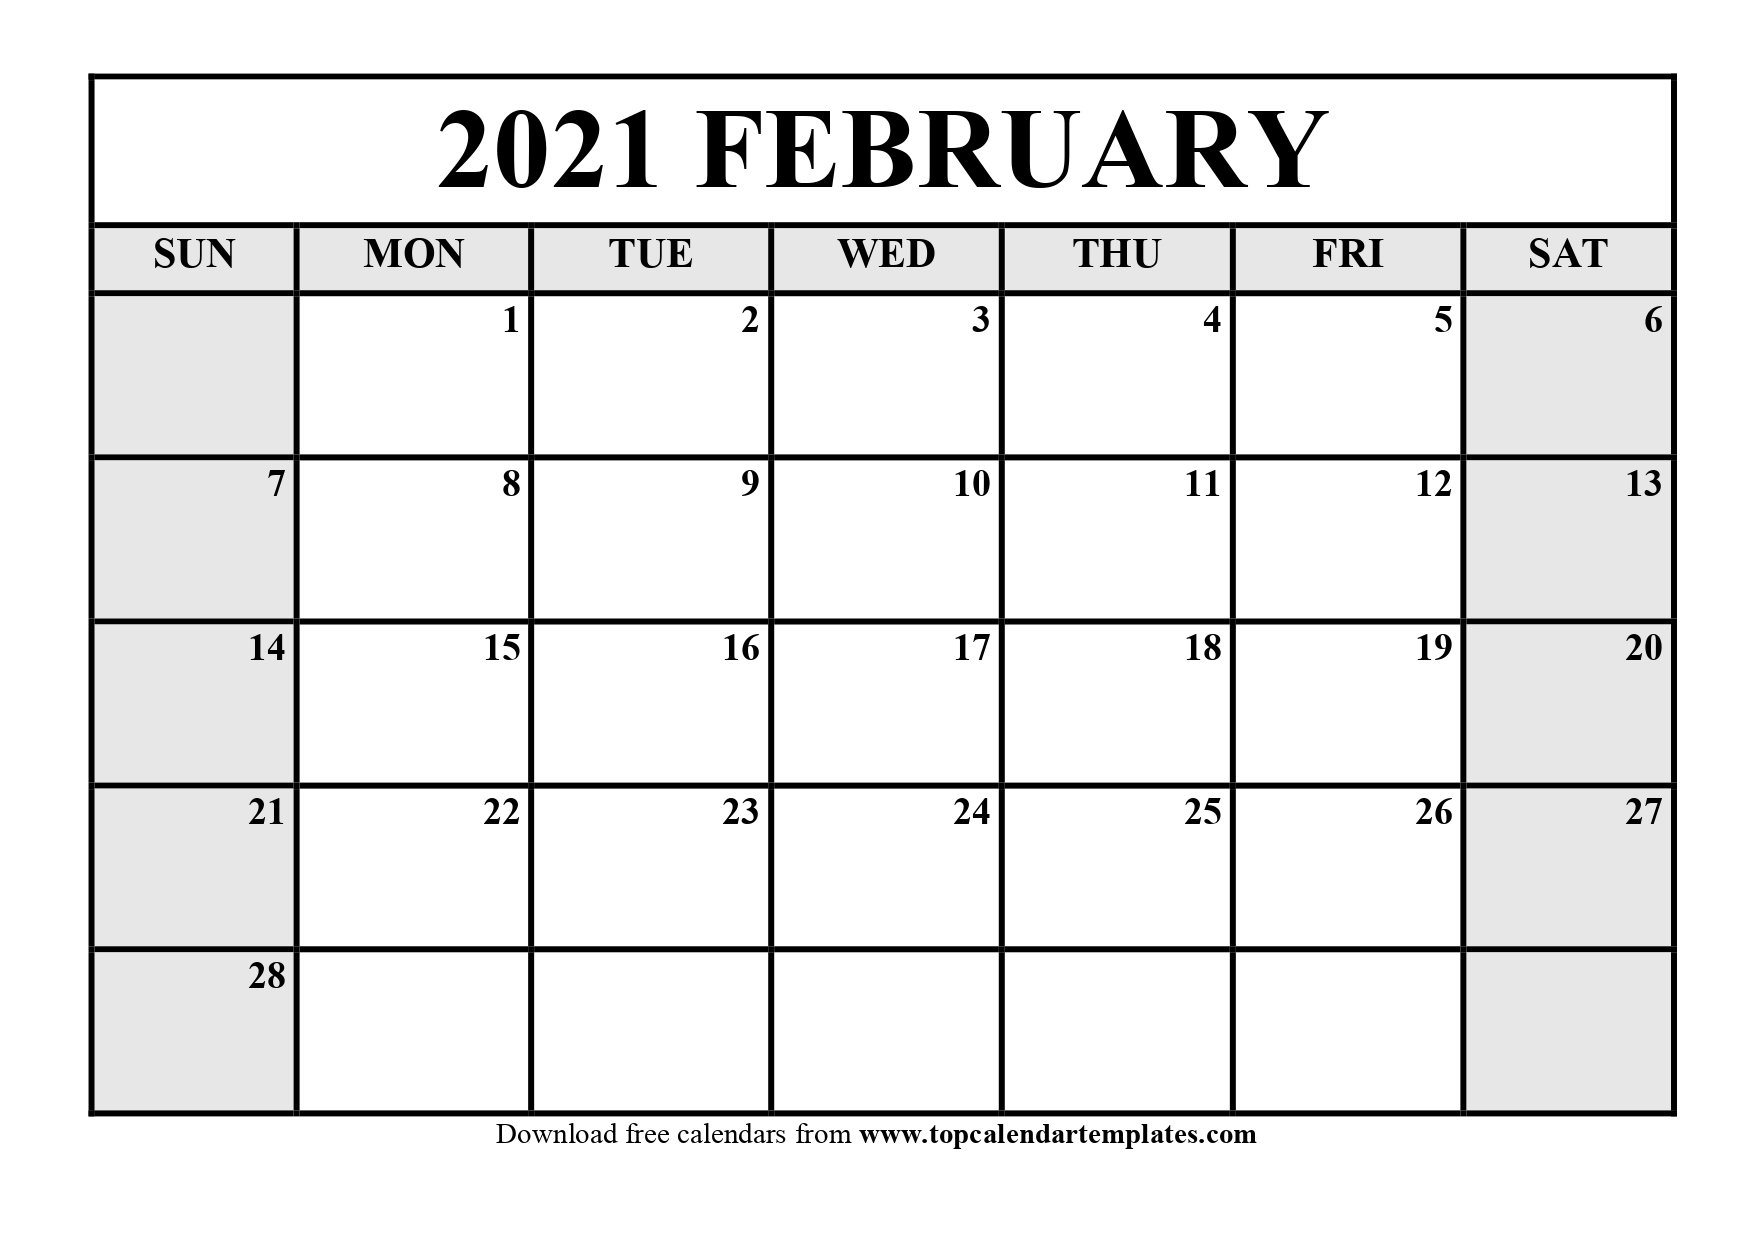 2021 Print Free Calendars Without Downloading   Calendar Printables Free Blank in Print Calendar 2021 Monthly Free